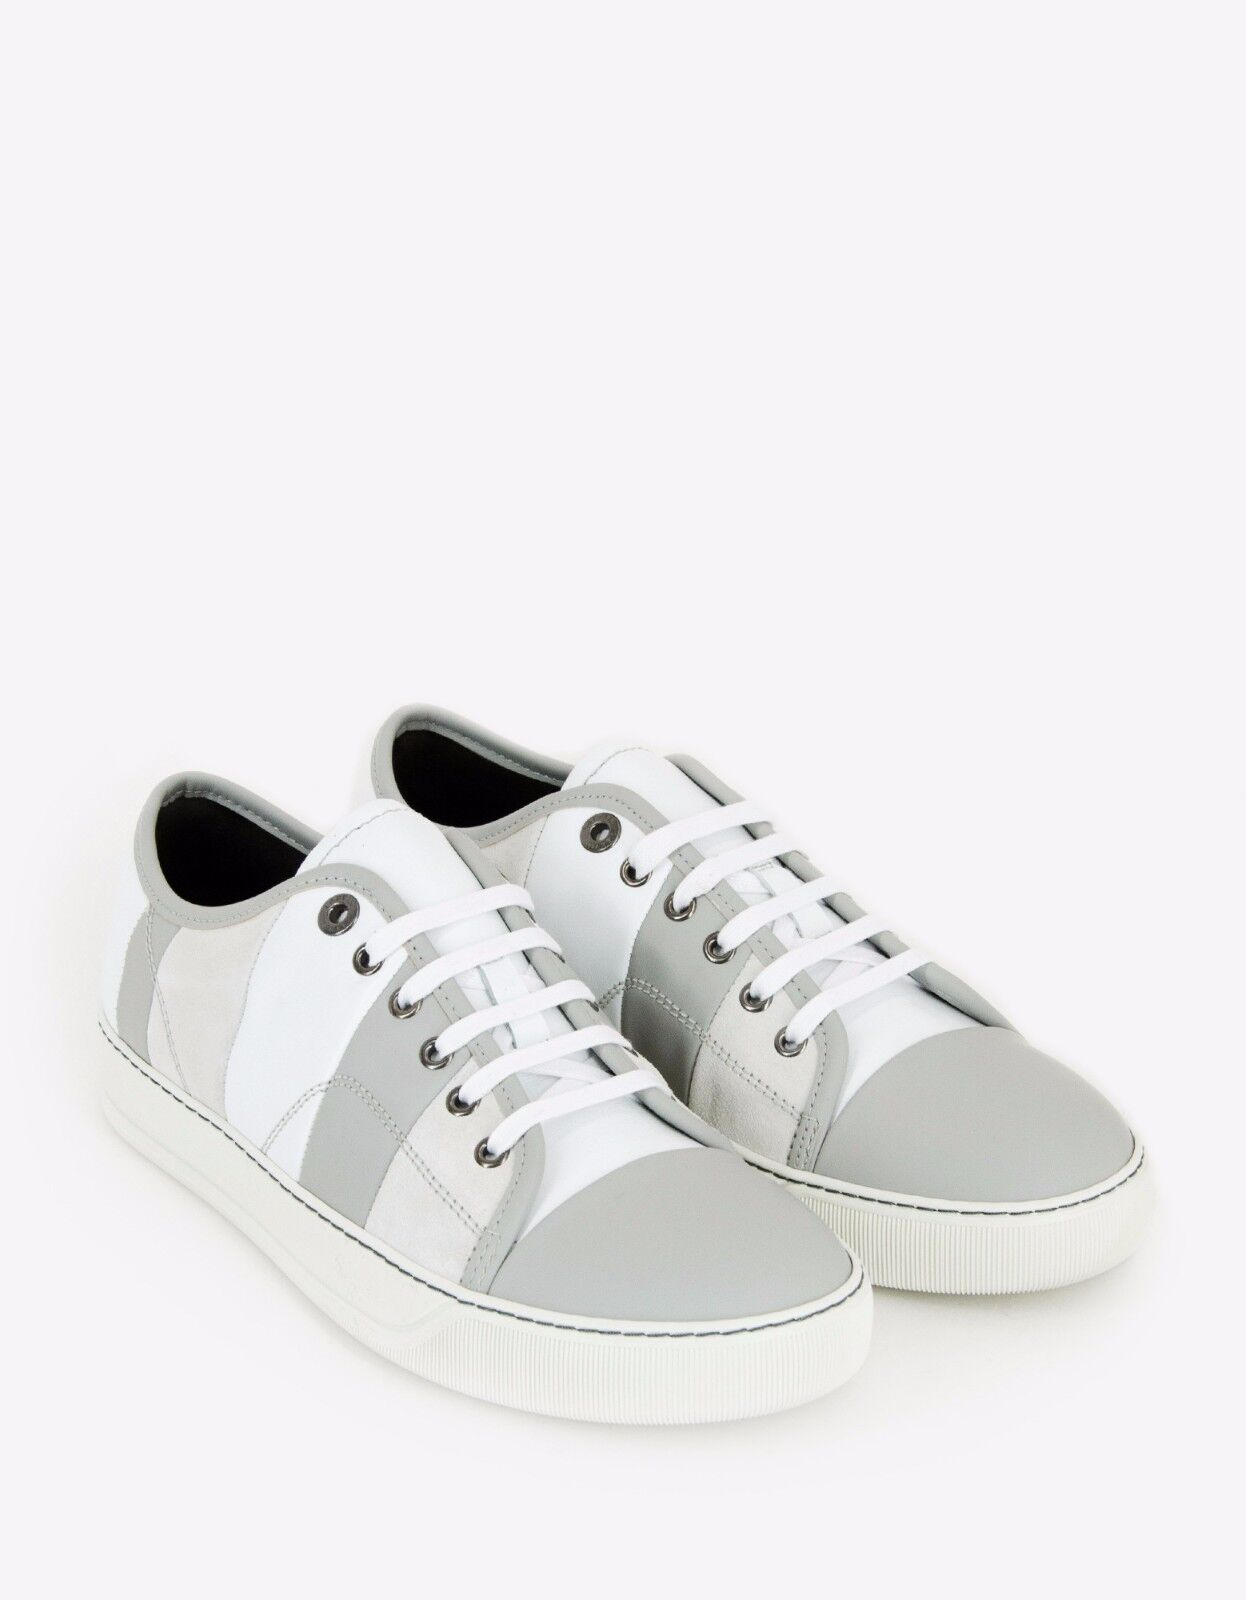 New Striped Lanvin Blanco Mixed Leather Striped New Trainers  315 BNWT 294570